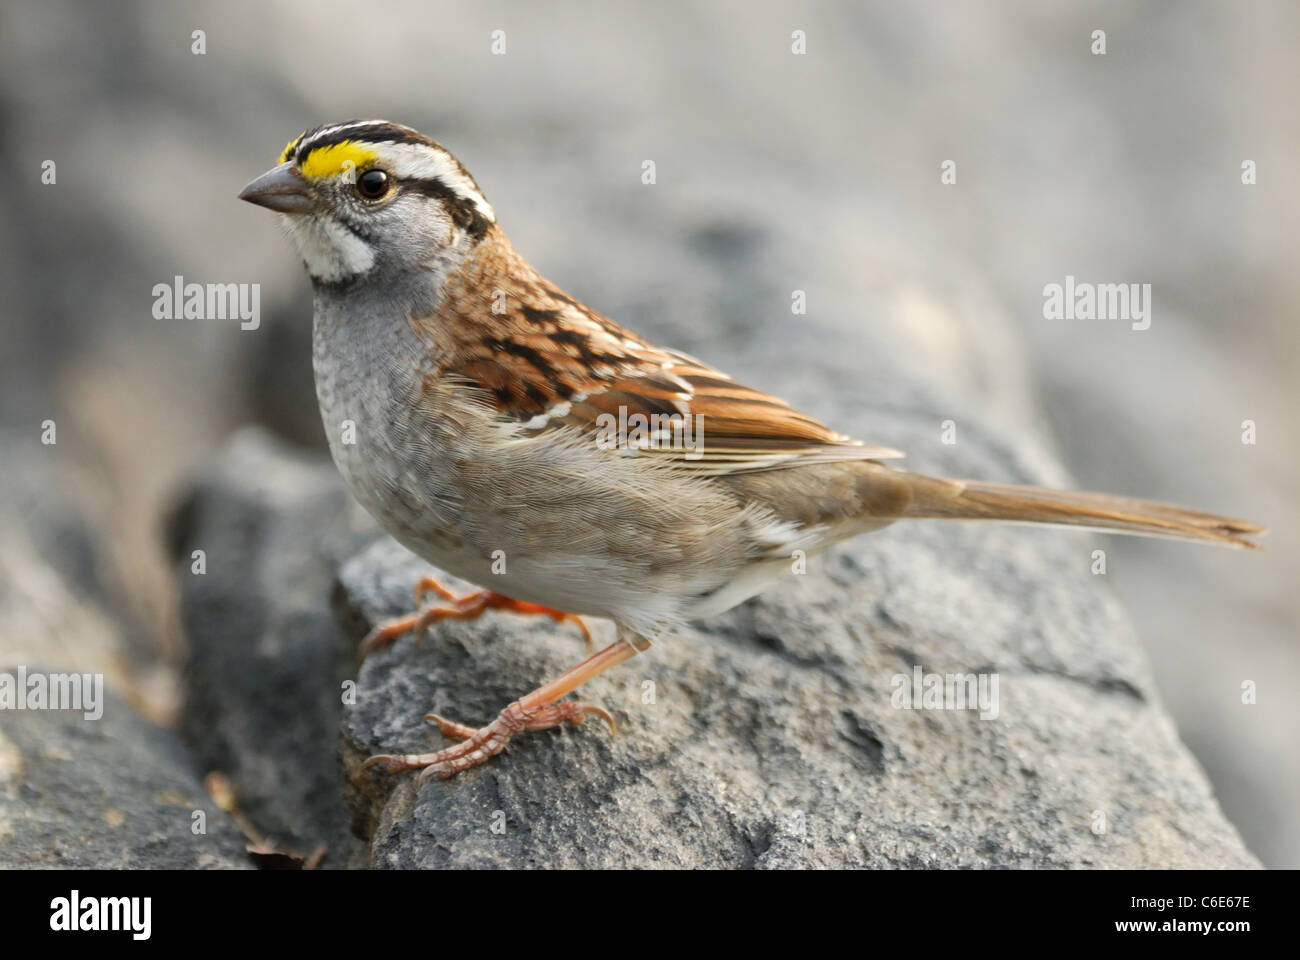 White-throated Sparrow (Zonotrichia albicollis) in Central Park, New York - Stock Image